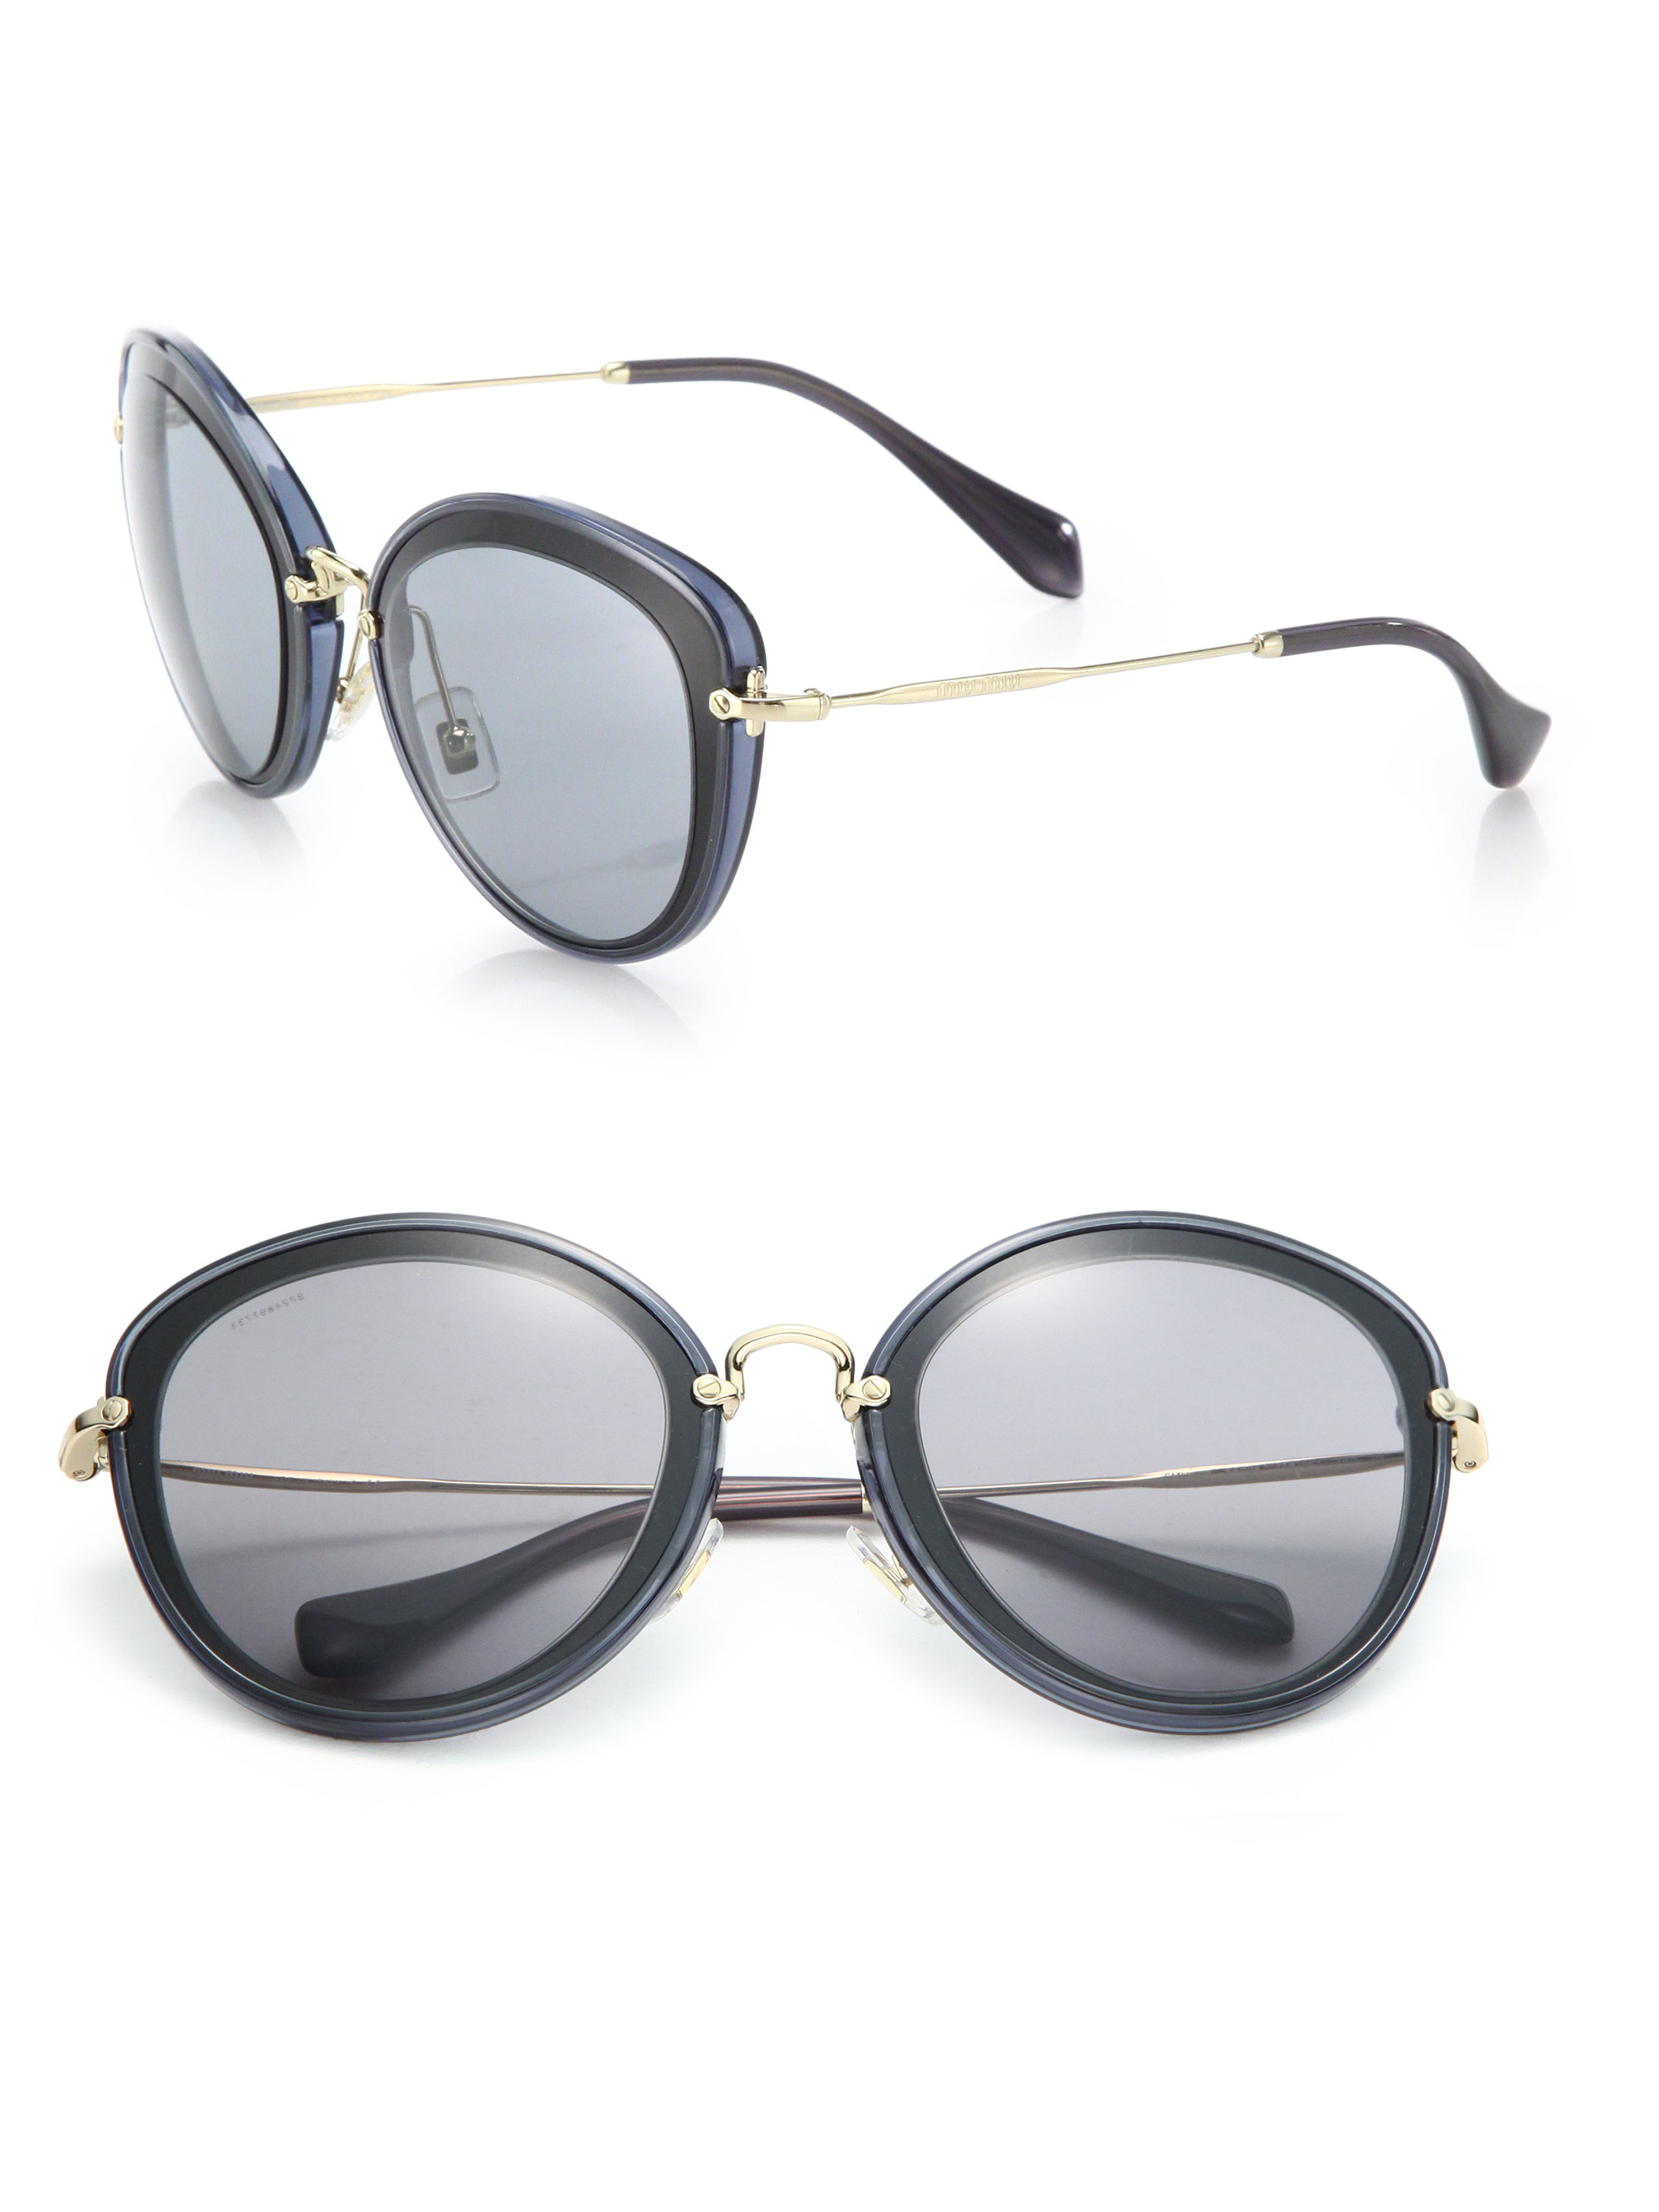 ab5b8c214cd Miu miu 54mm Metal Cat Eye Sunglasses in Black